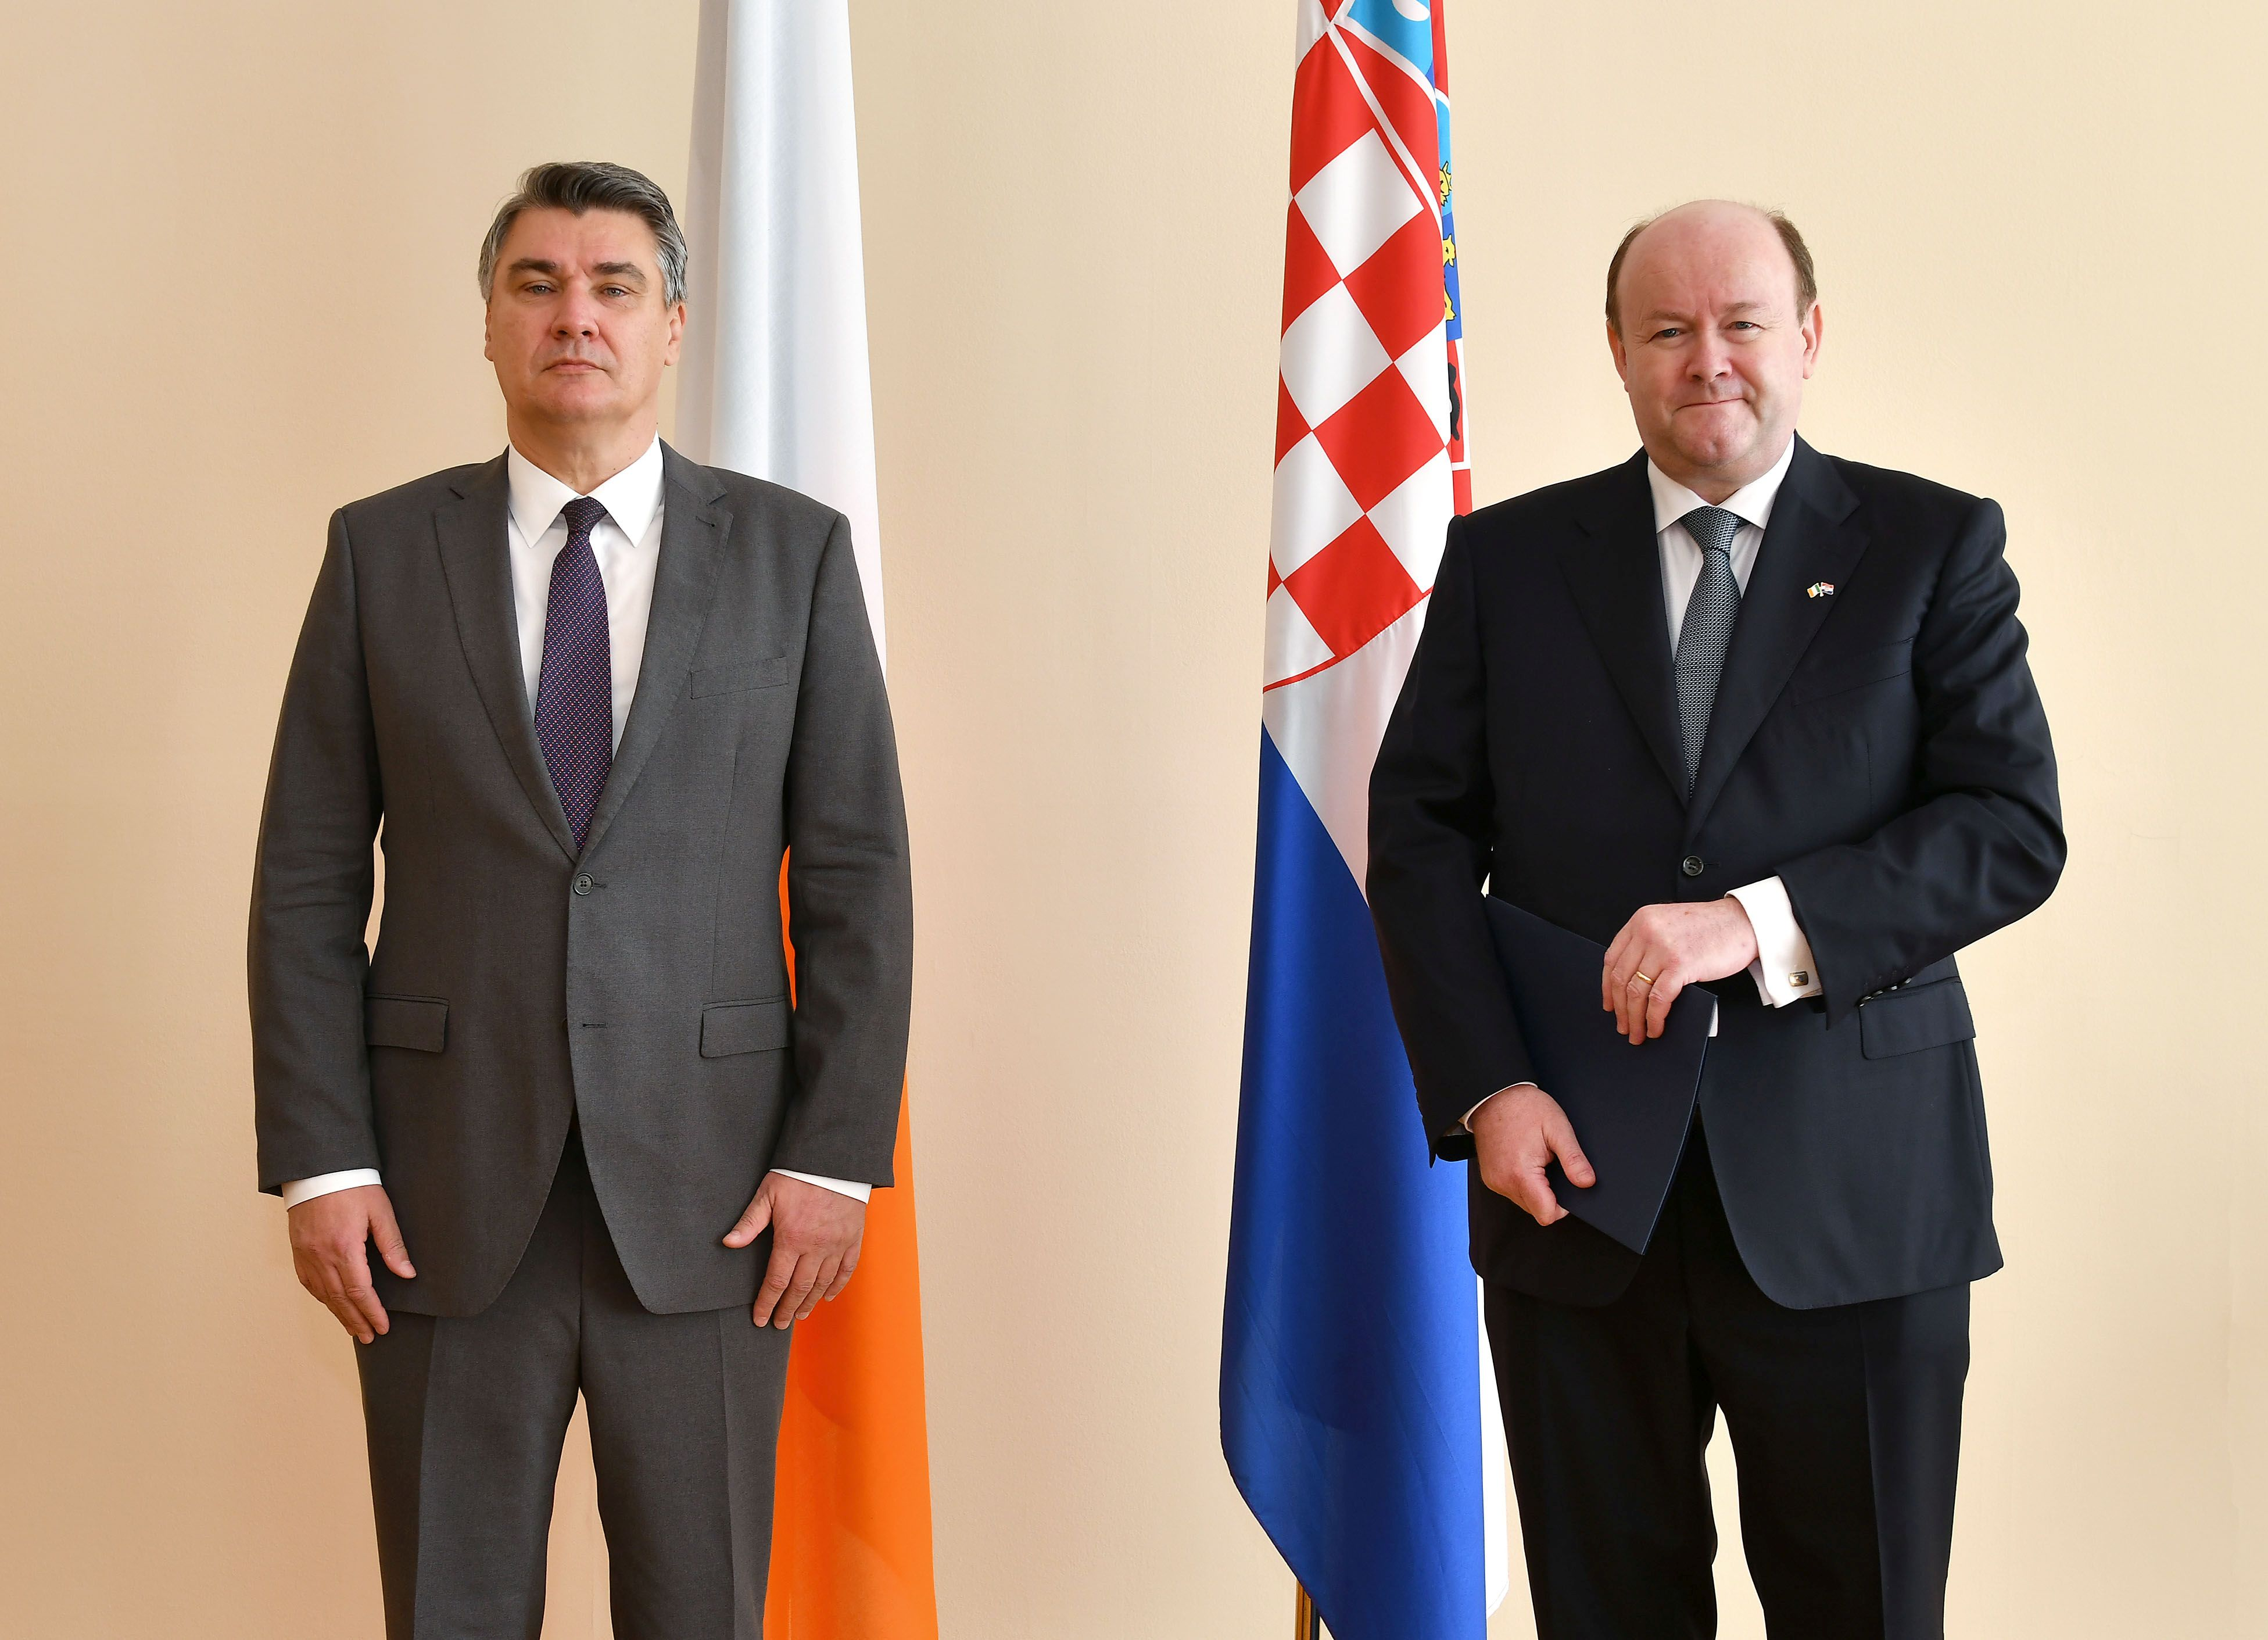 Ambassador Dowling presents credentials to Croatian President